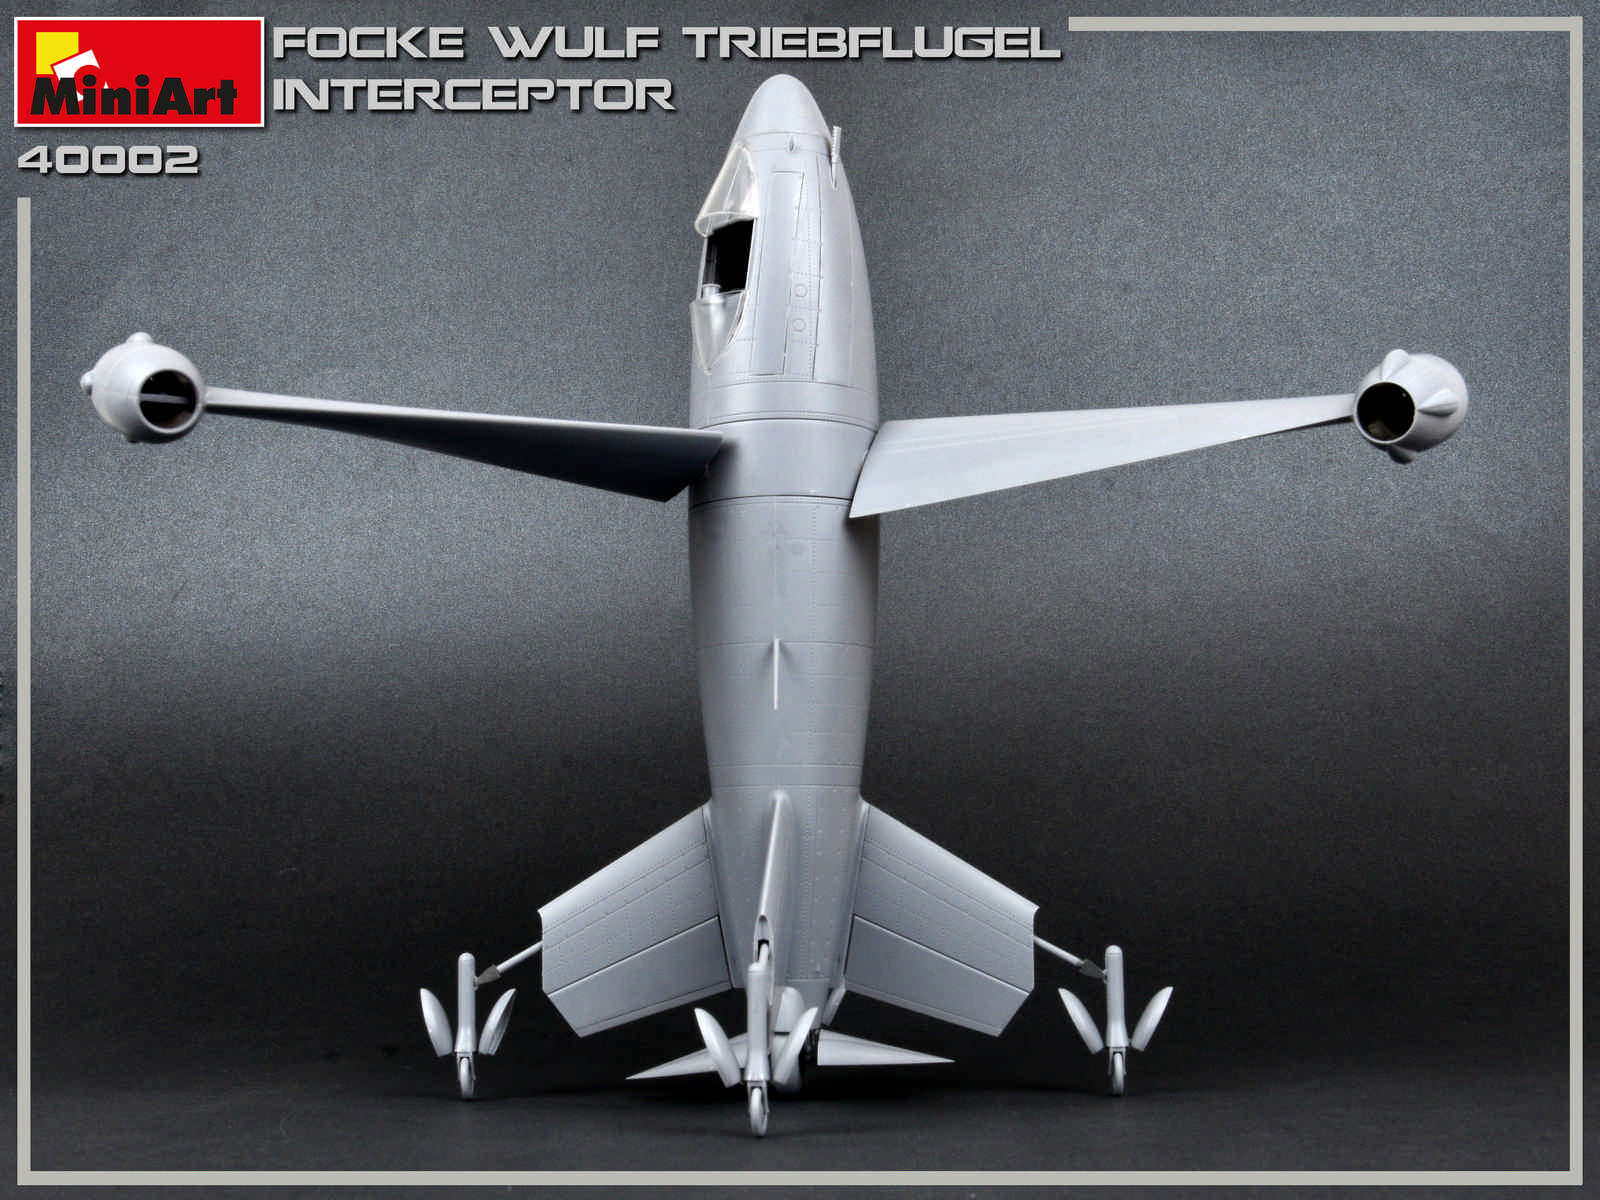 New Photos of Kit: 40002 FOCKE WULF TRIEBFLUGEL INTERCEPTOR